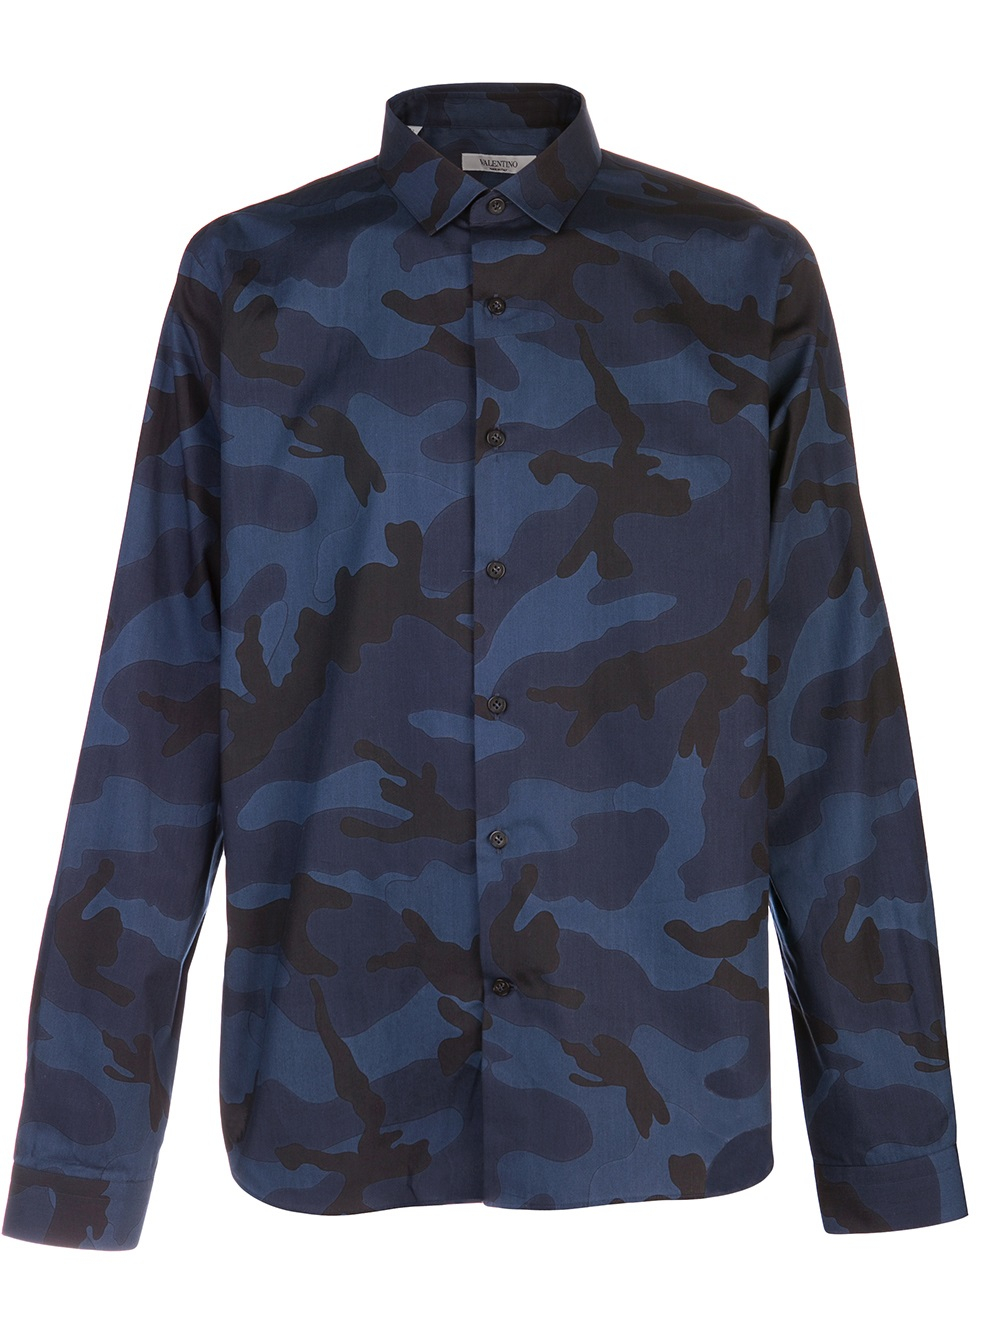 Lyst Valentino Camouflage Shirt In Blue For Men